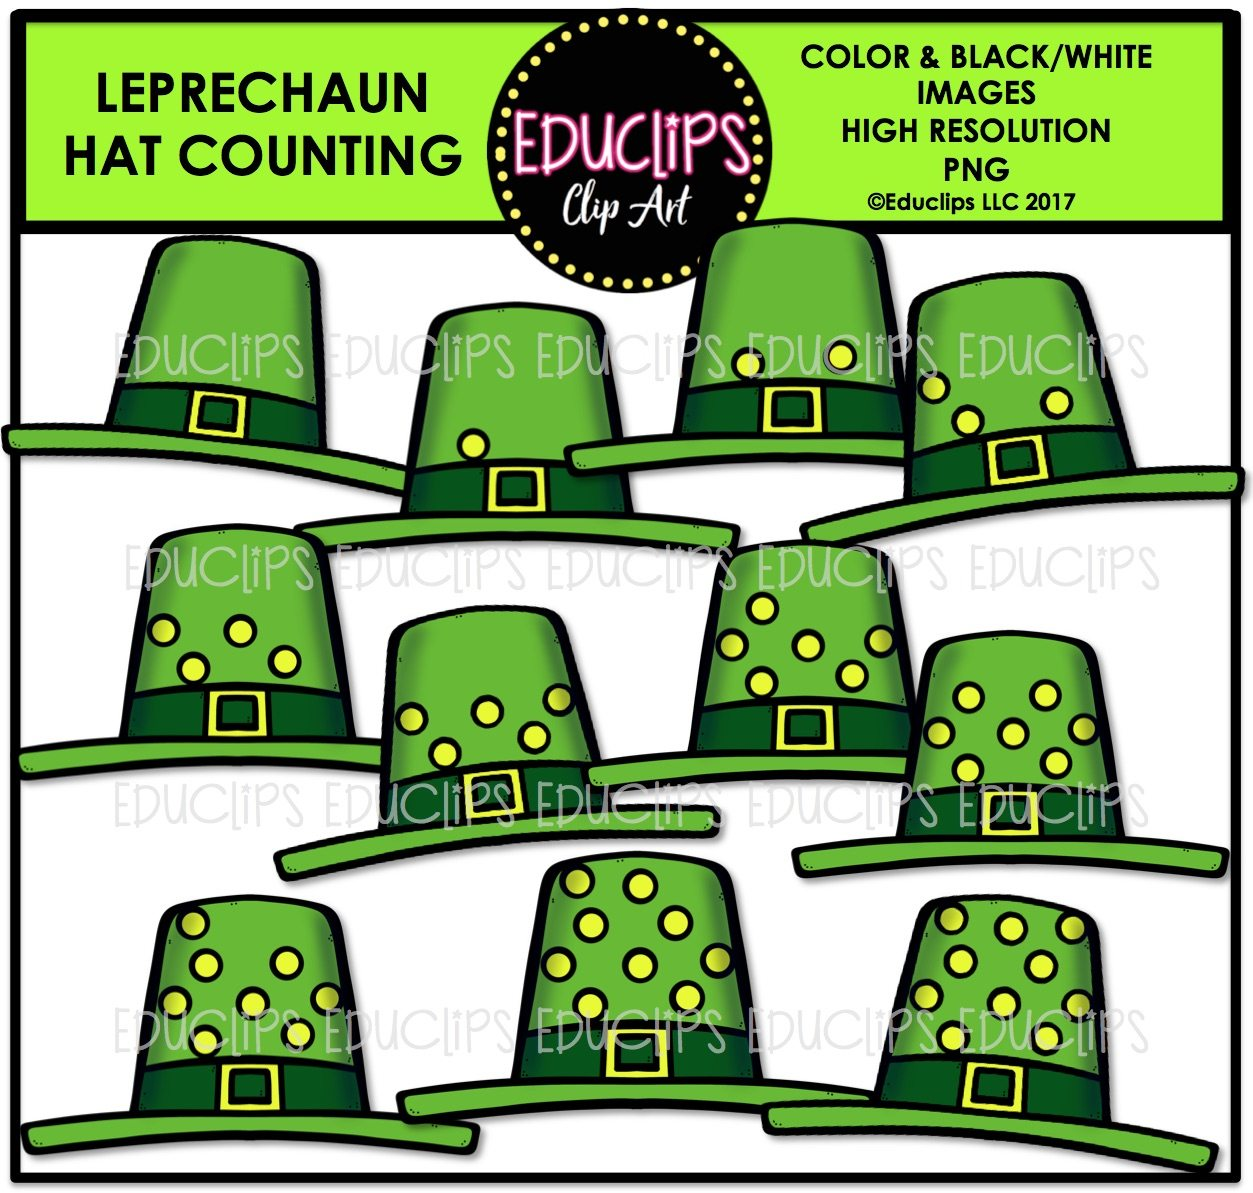 leprechaun hat counting clip art color and b u0026w welcome to